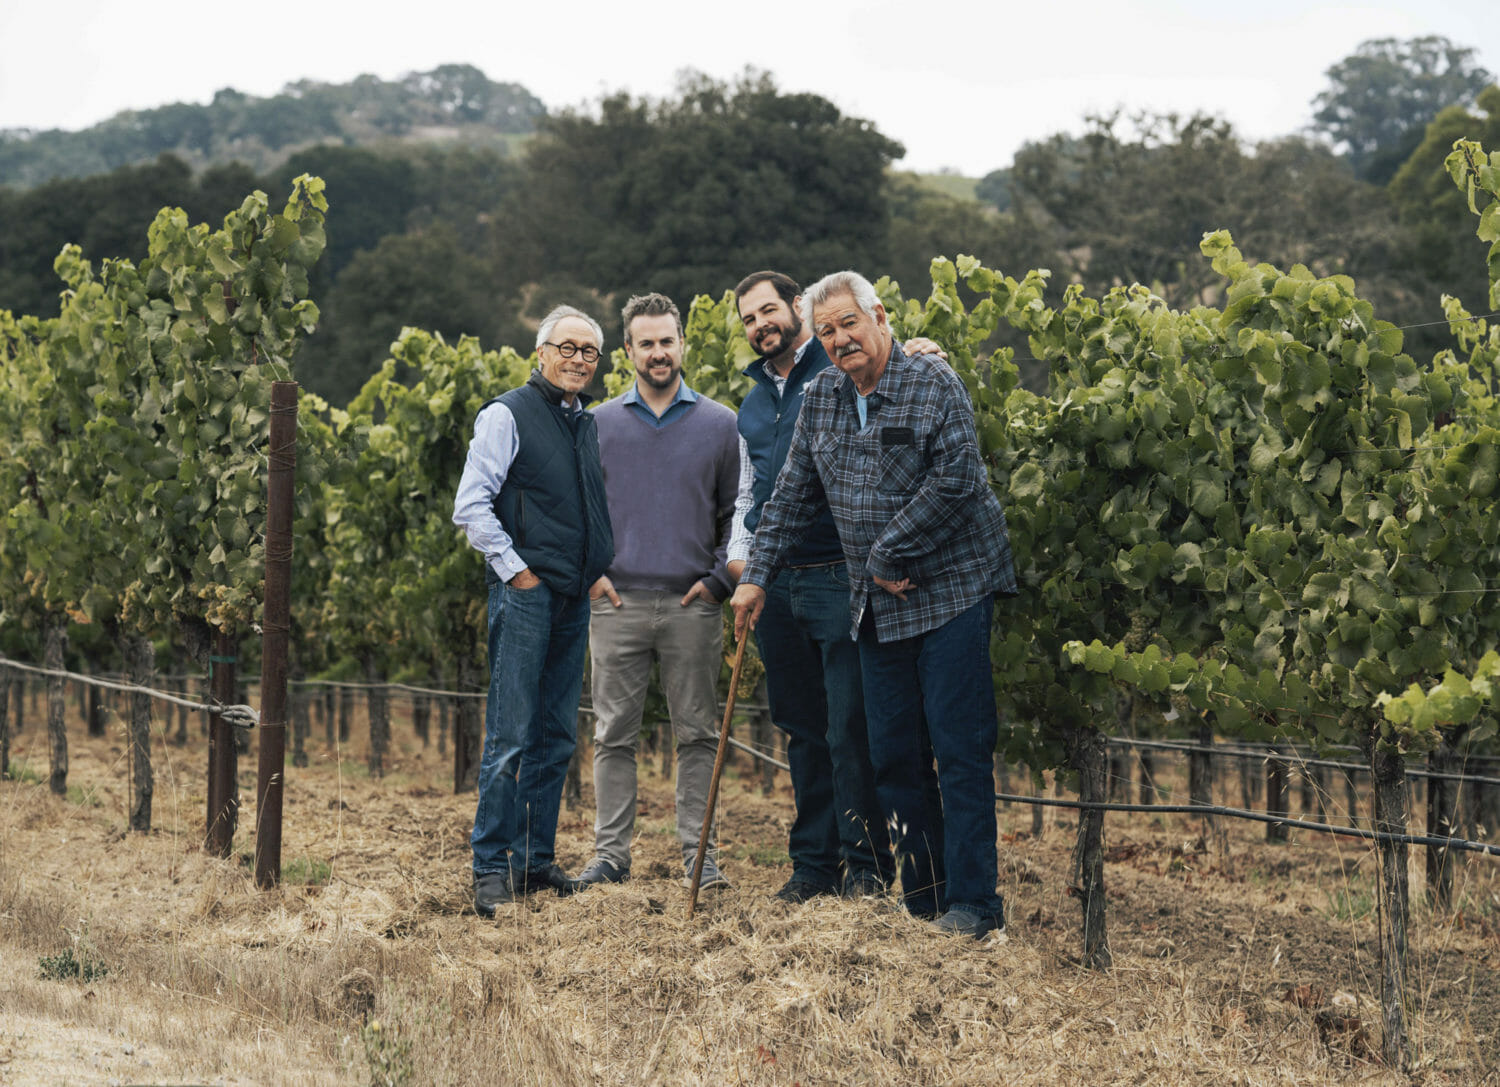 Hyde vineyard with Chris Hyde and others